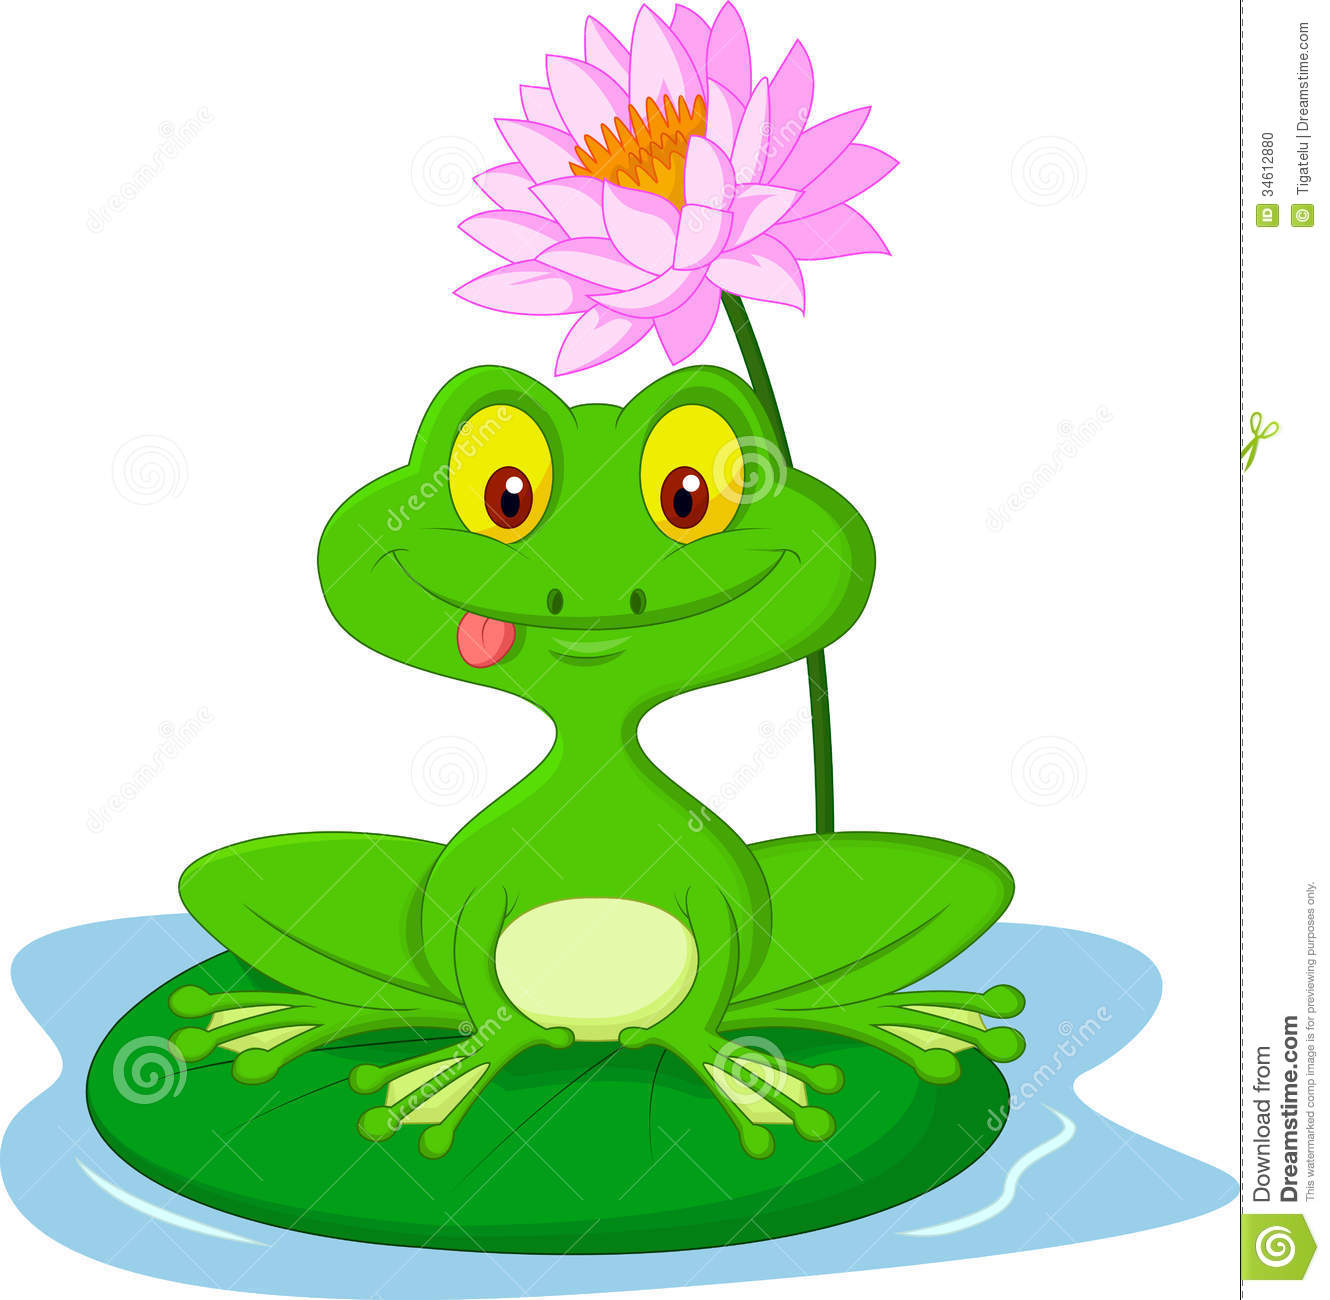 Frog Lily Pad Template File Name Frog-on-lily-pad